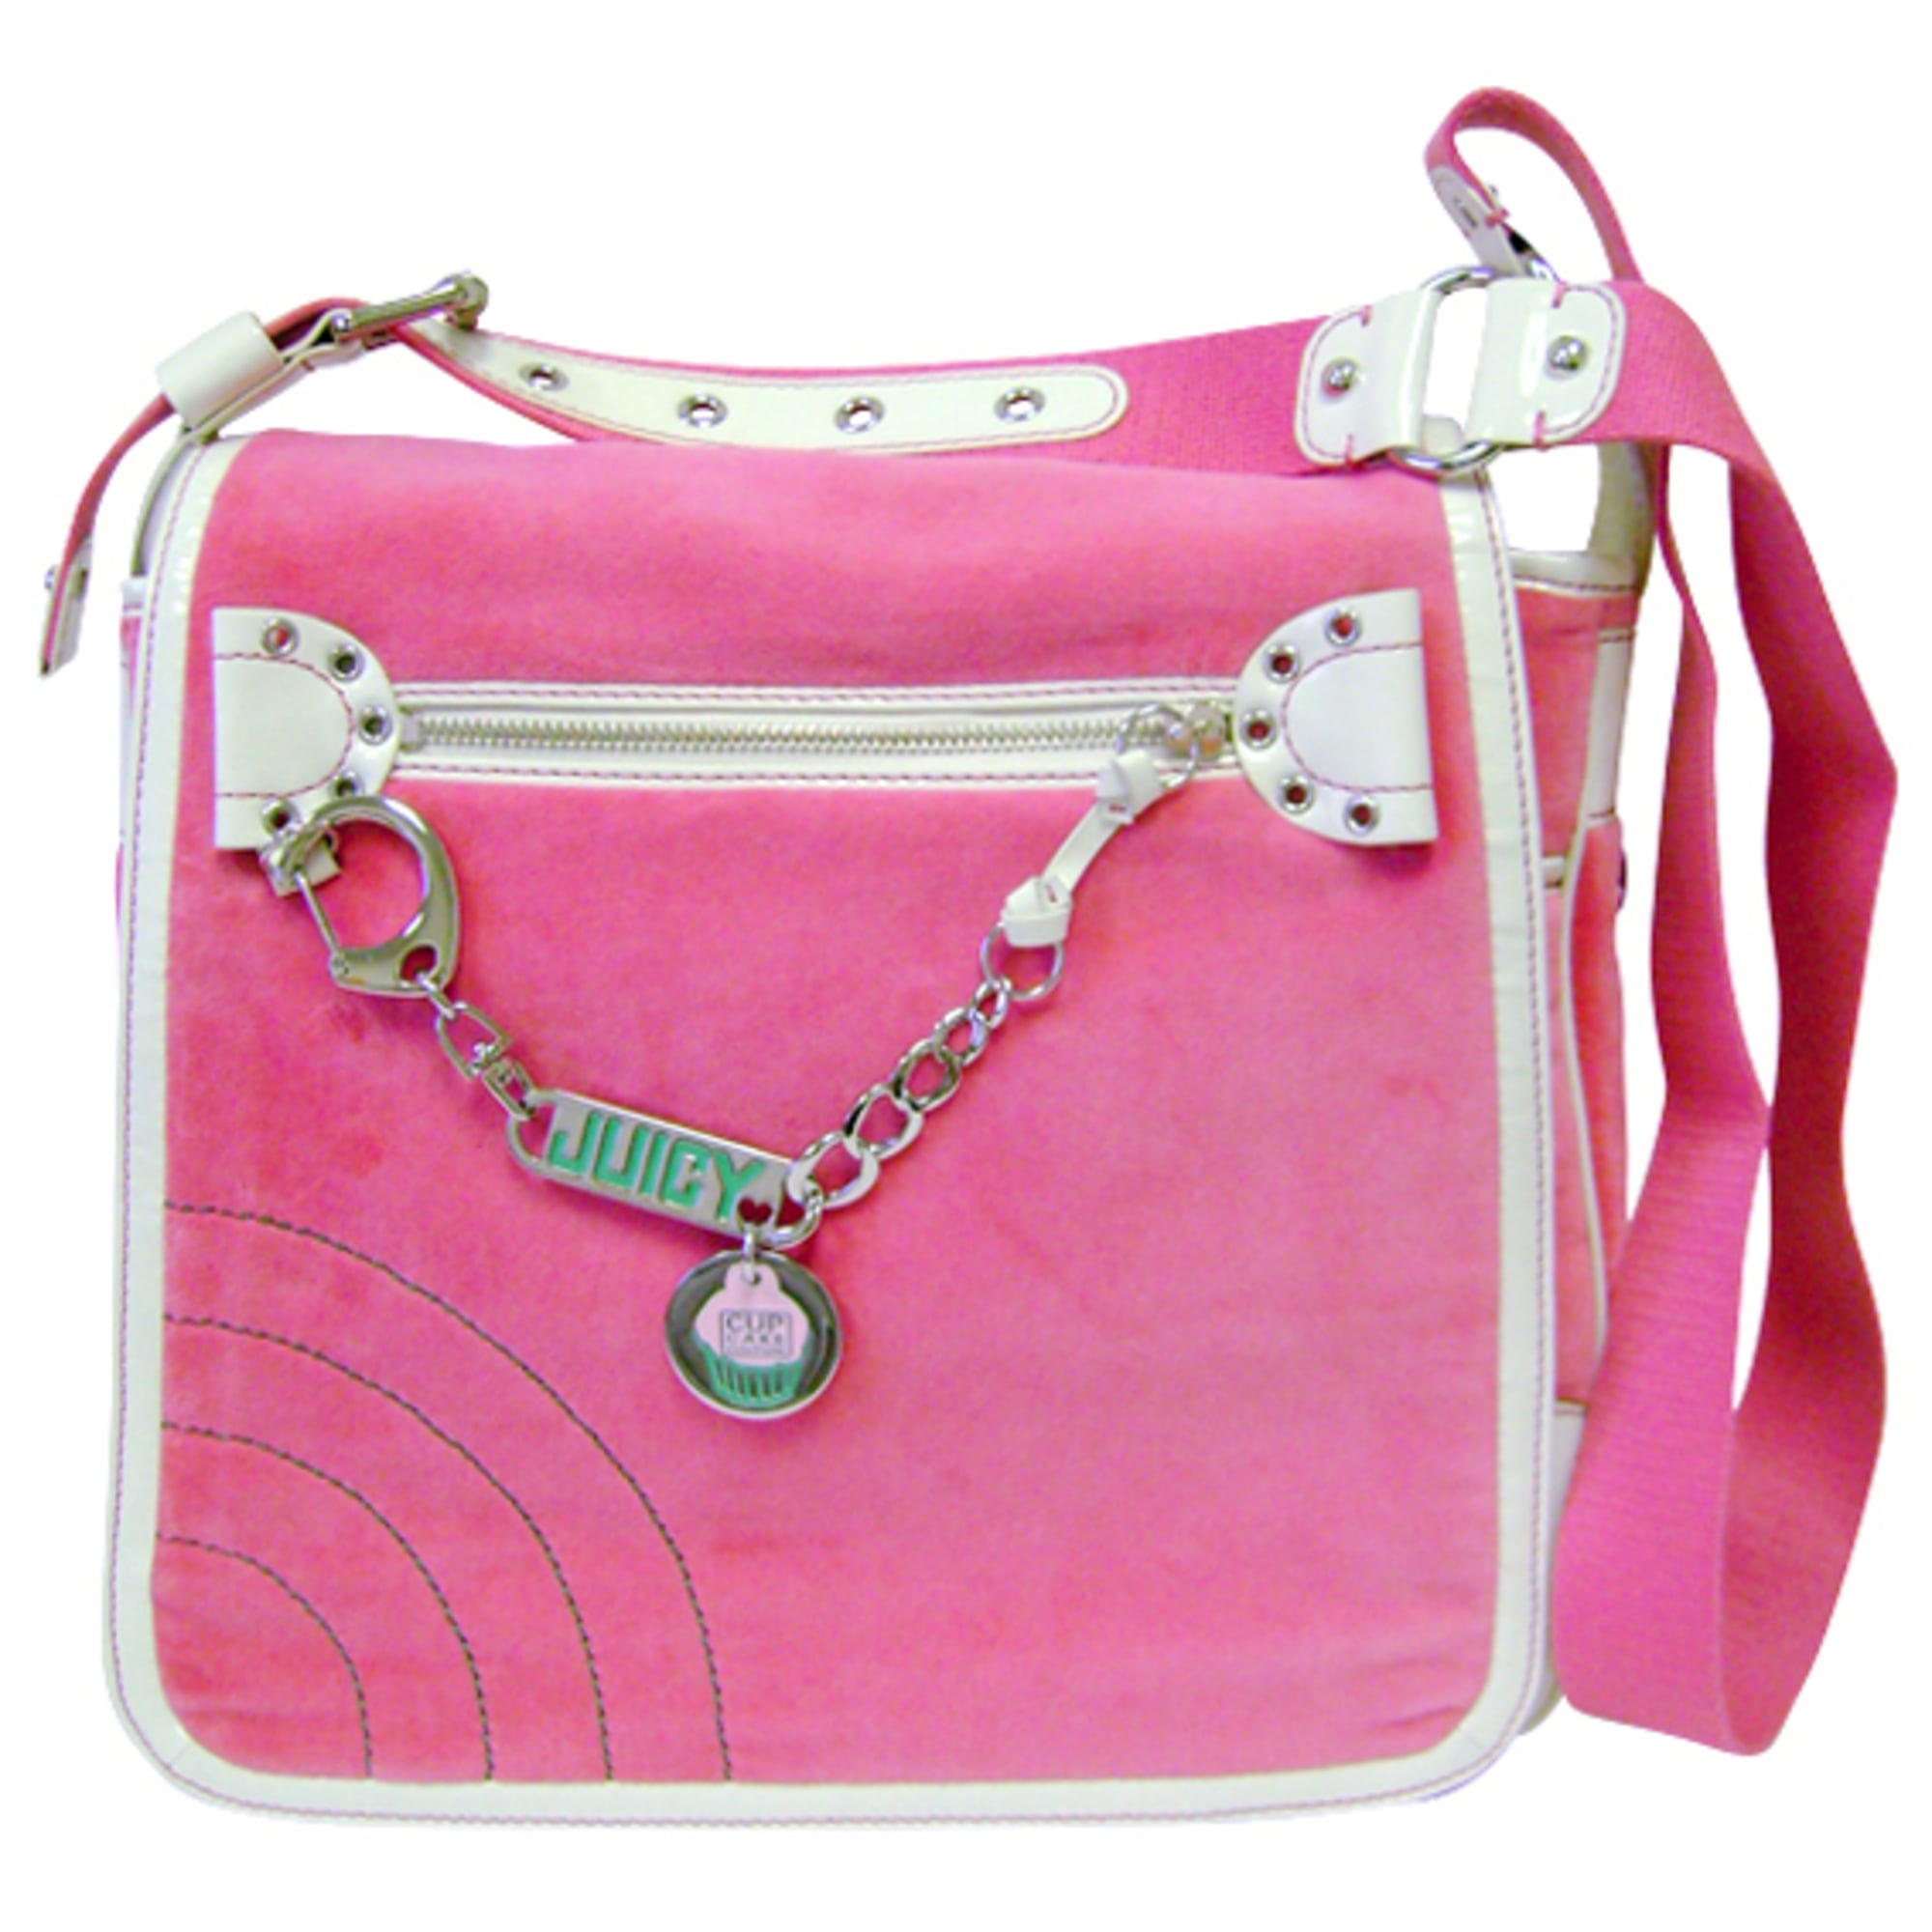 Sacoche JUICY COUTURE velour rose